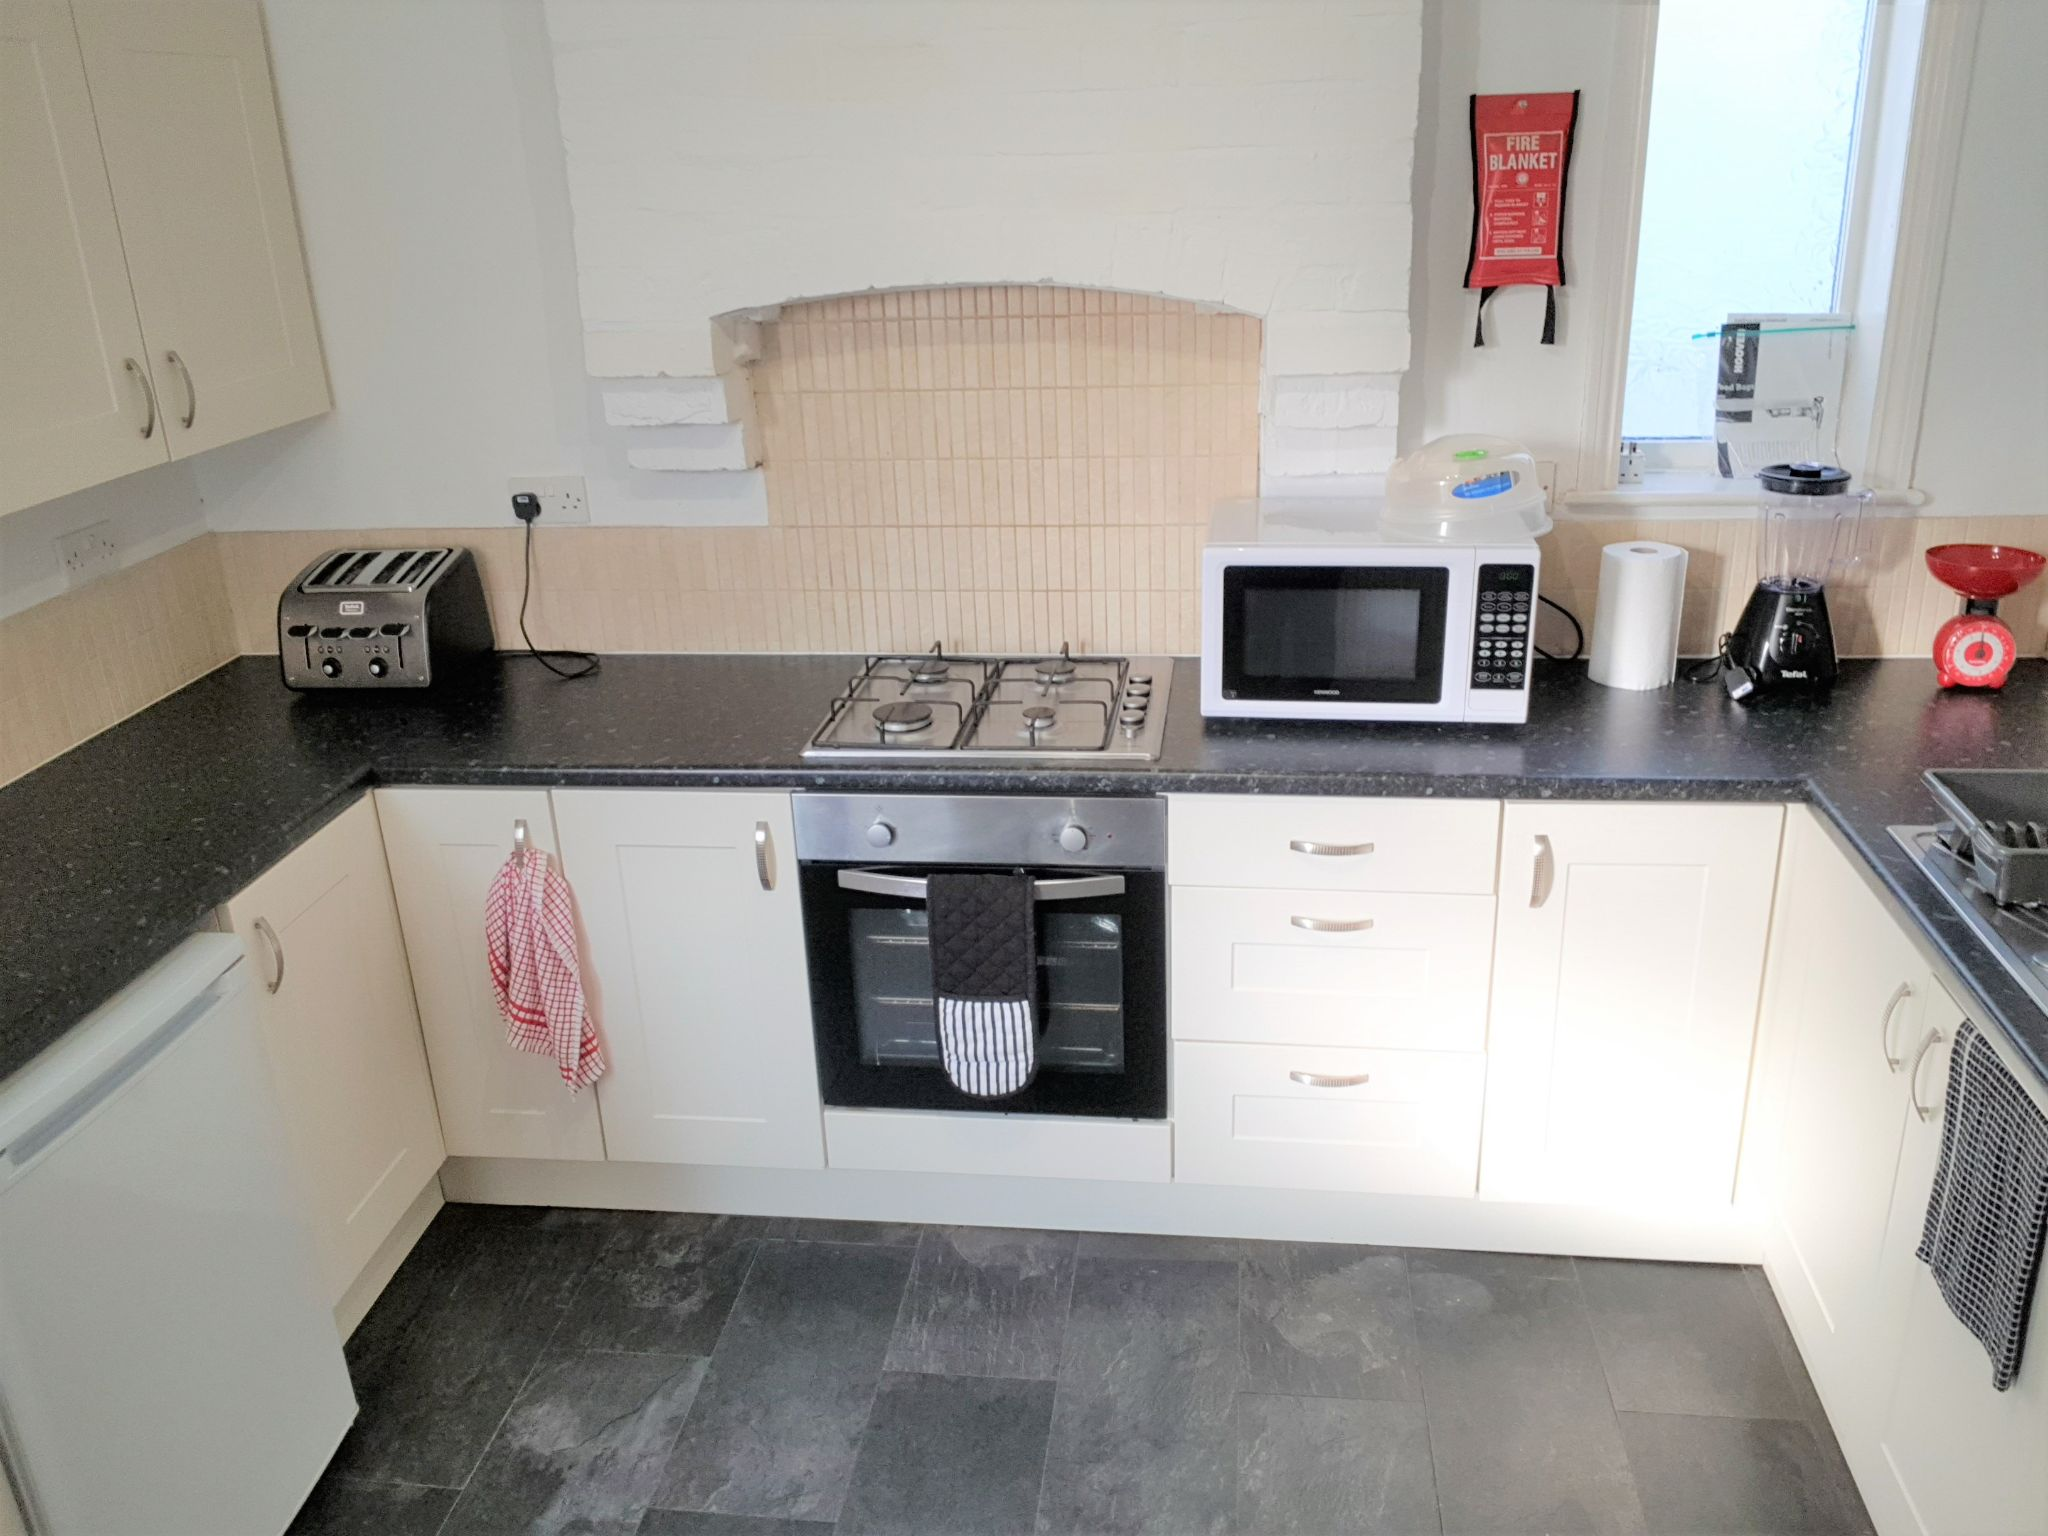 1 Bedroom Shared House To Rent - Communal Kitchen